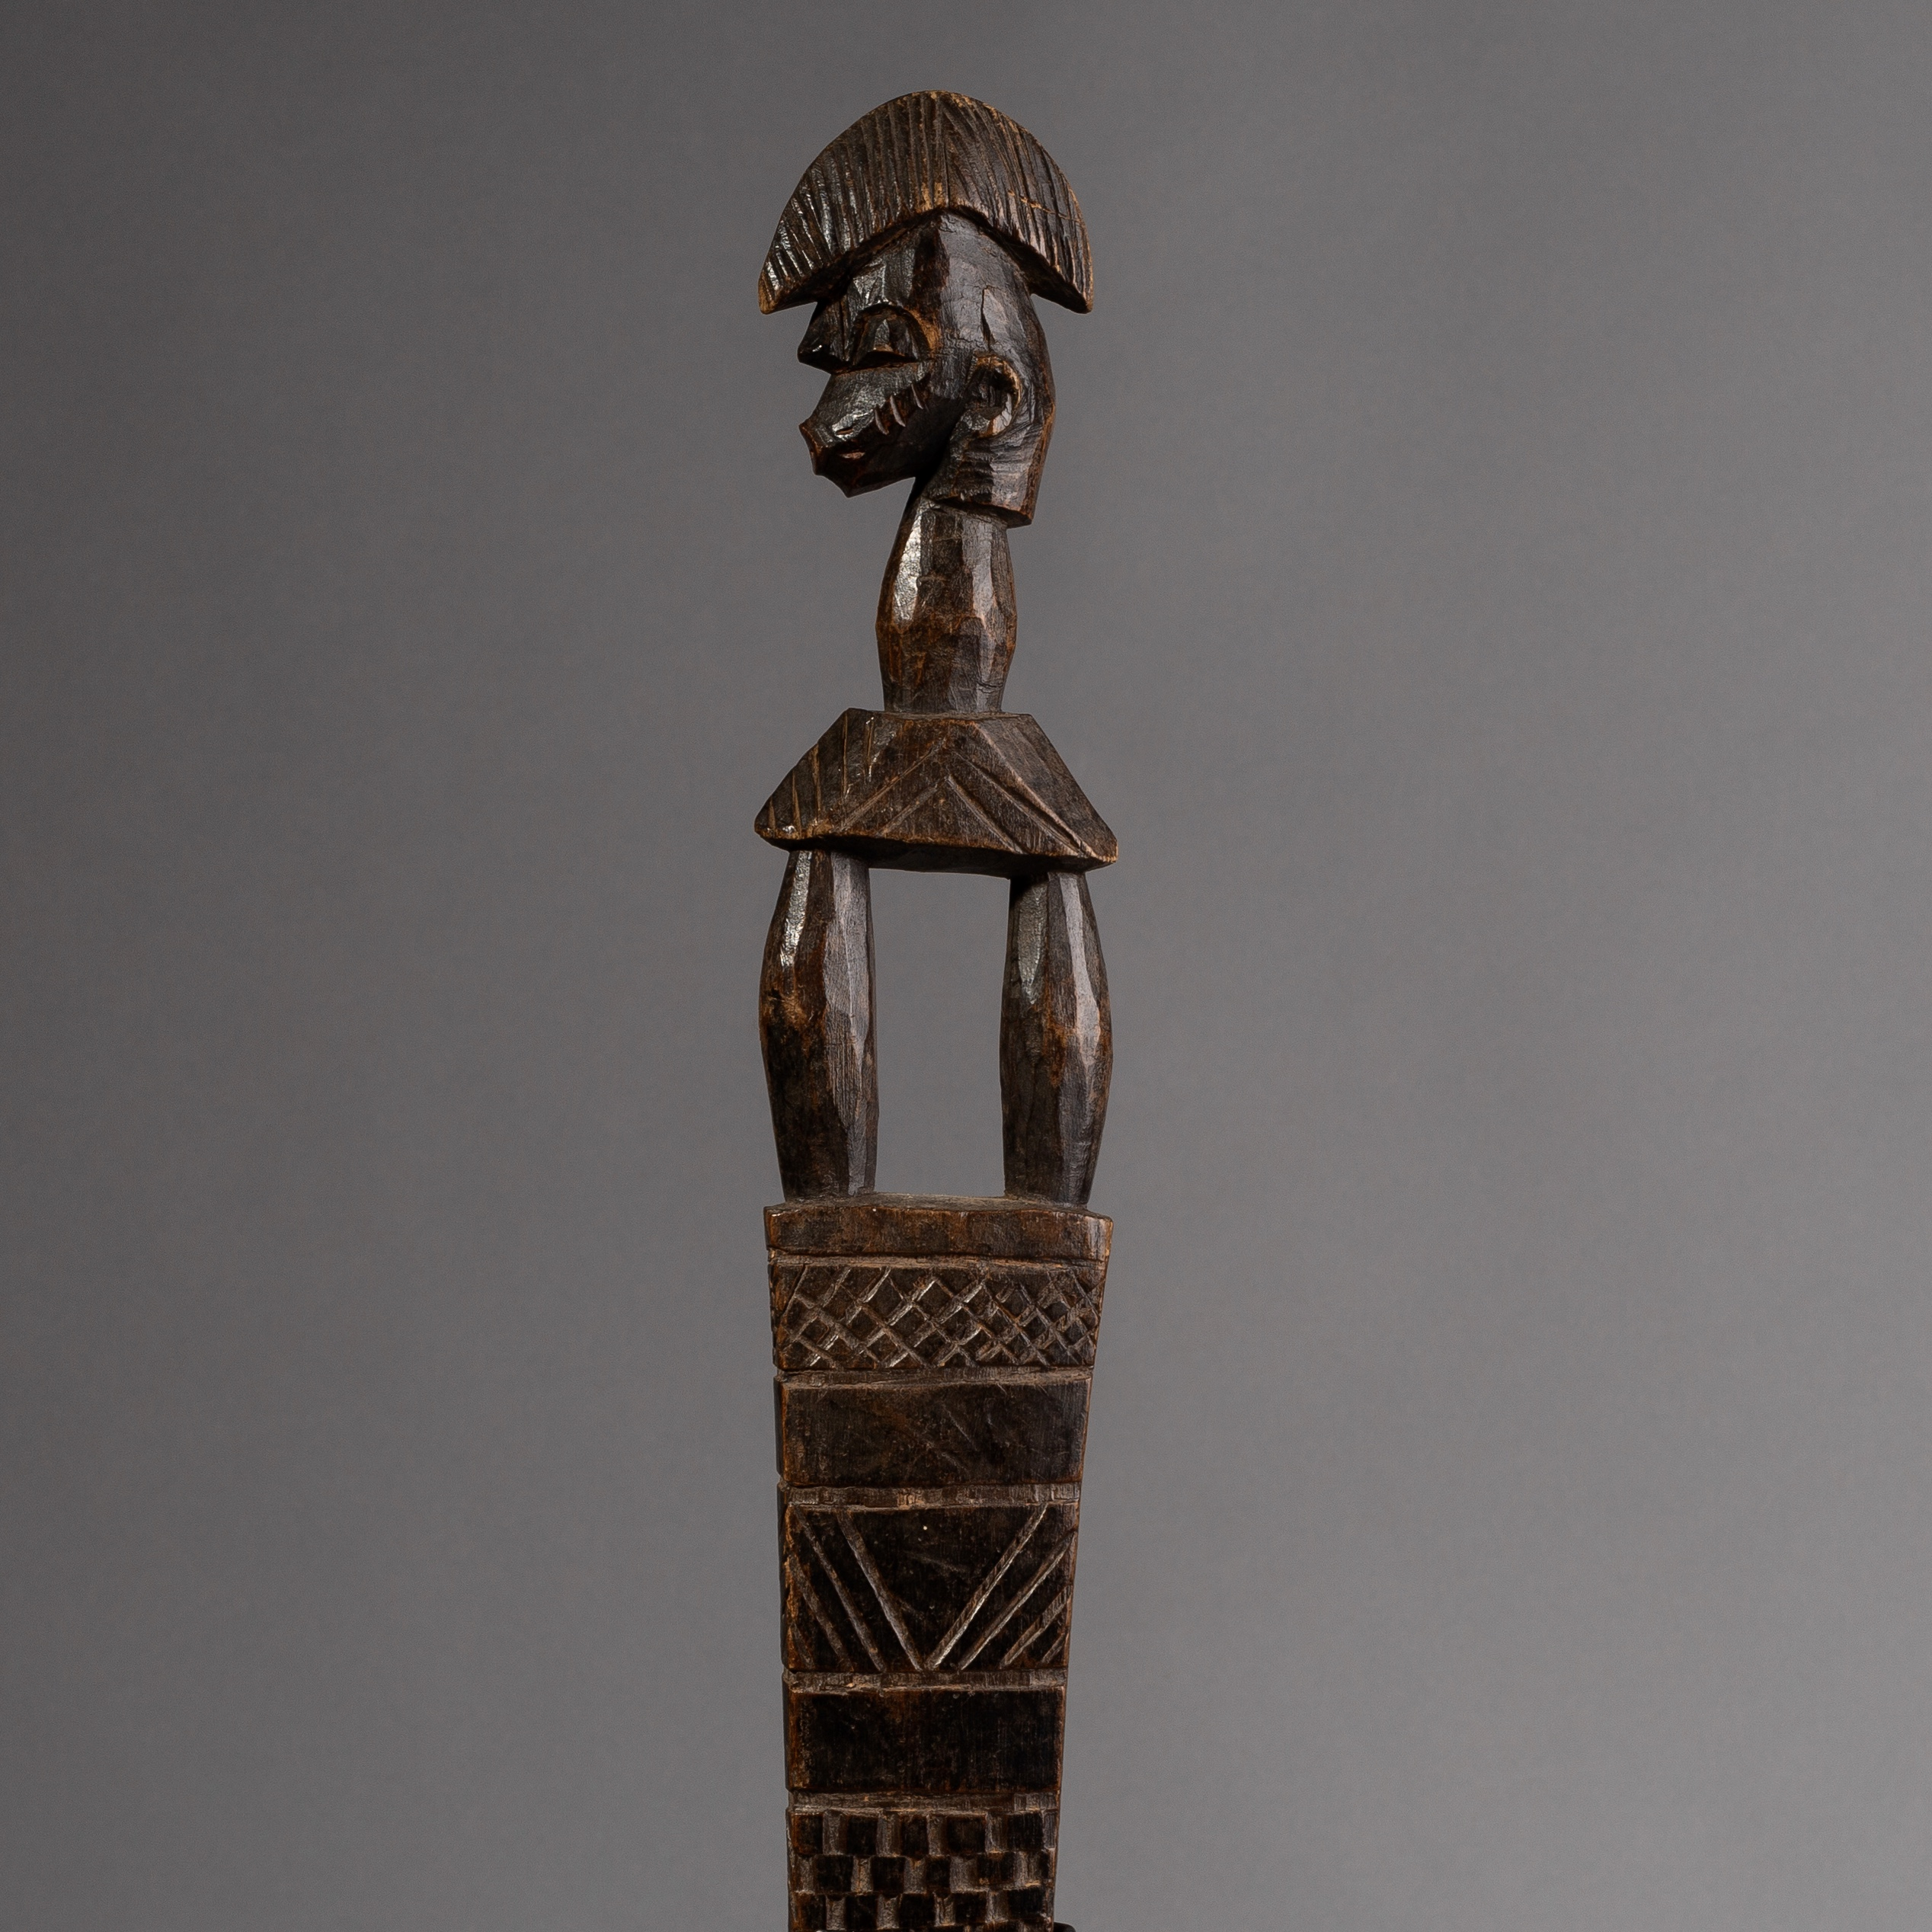 SD A SWEET FIGURATIVE STAFF FROM  THE SENUFO TRIBE  OF IVORY COAST  ( No 1364 )